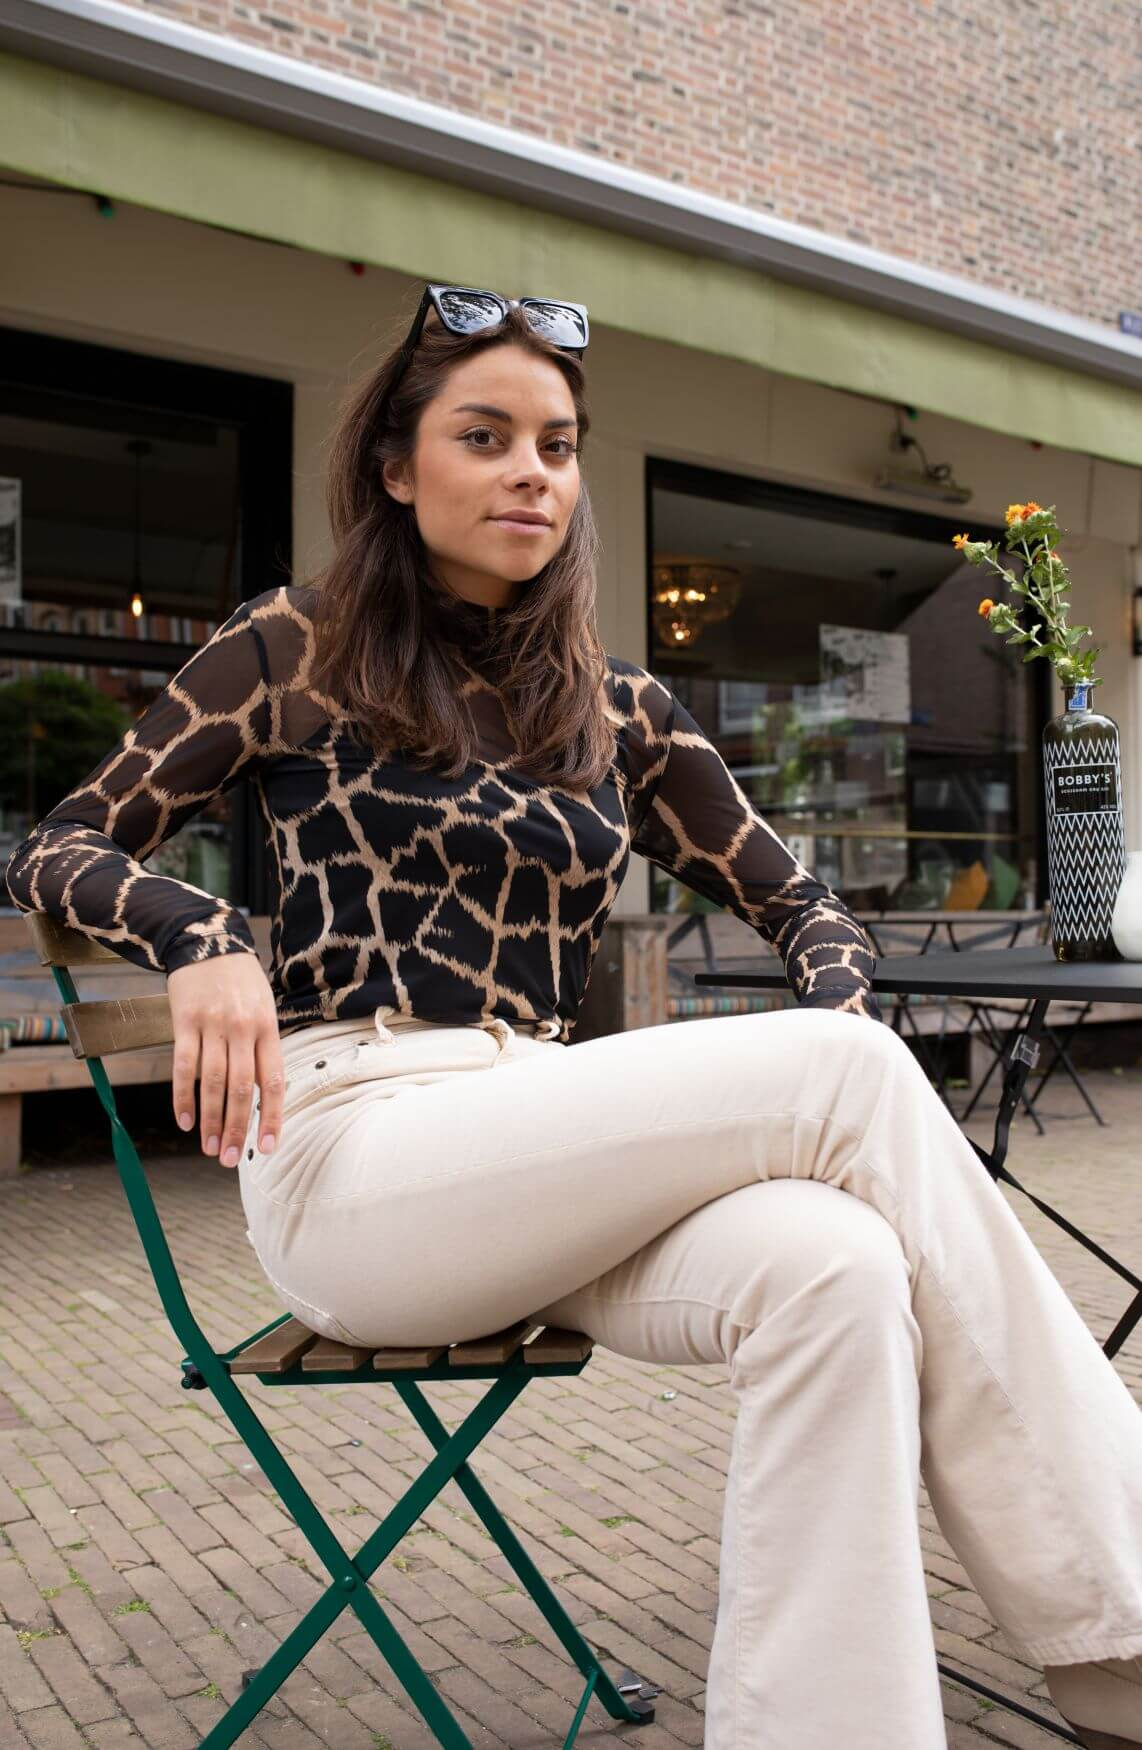 Dames Streetlook - 209